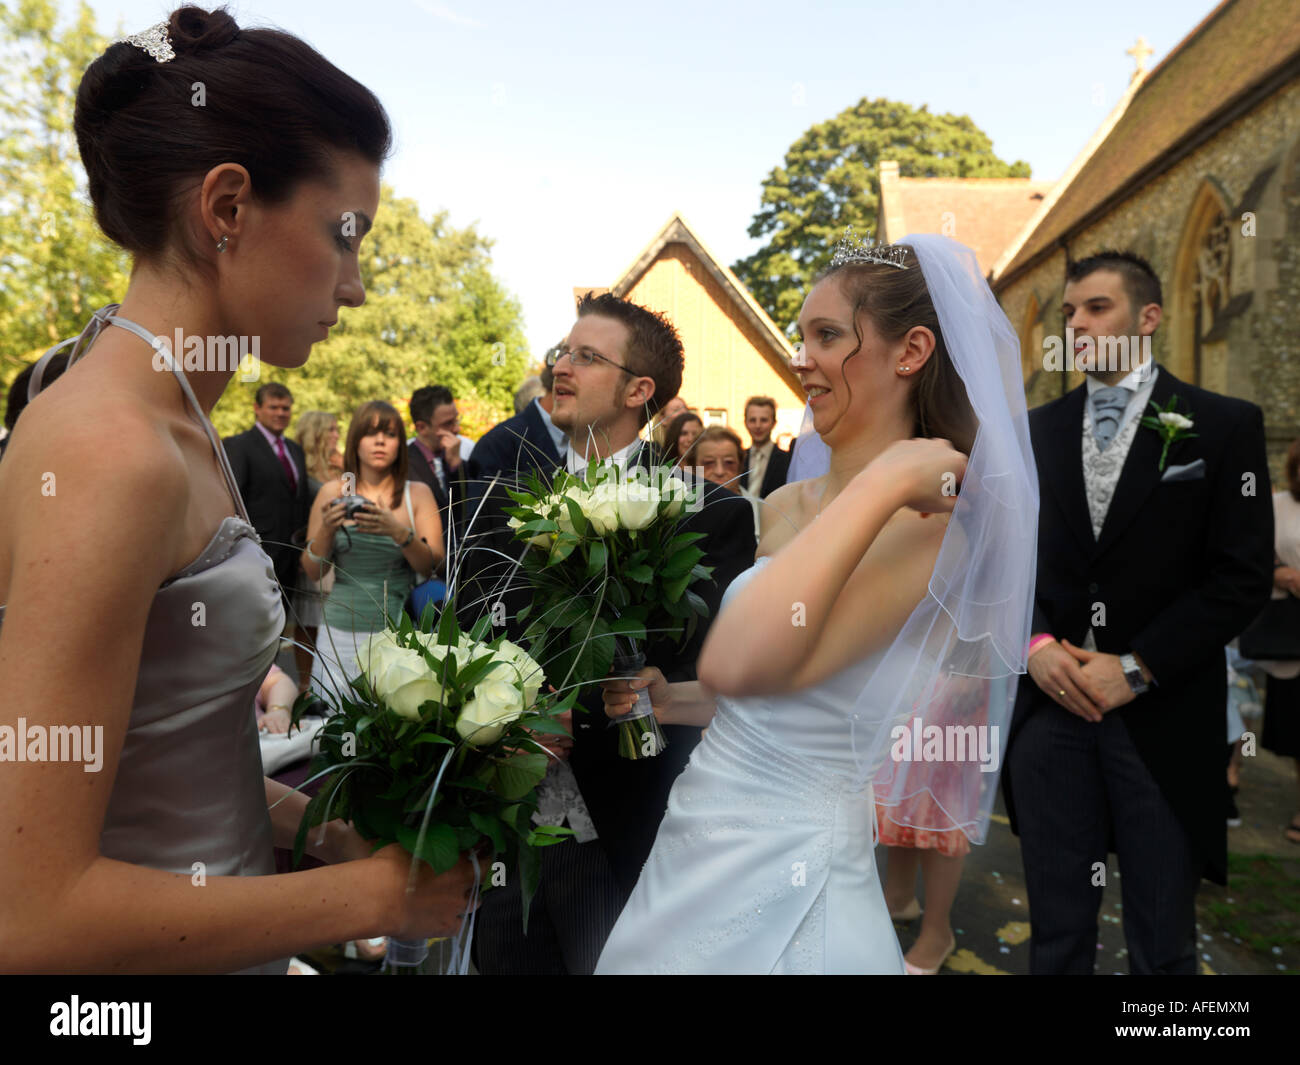 Bride Groom Best Man and Guests After Wedding - Stock Image